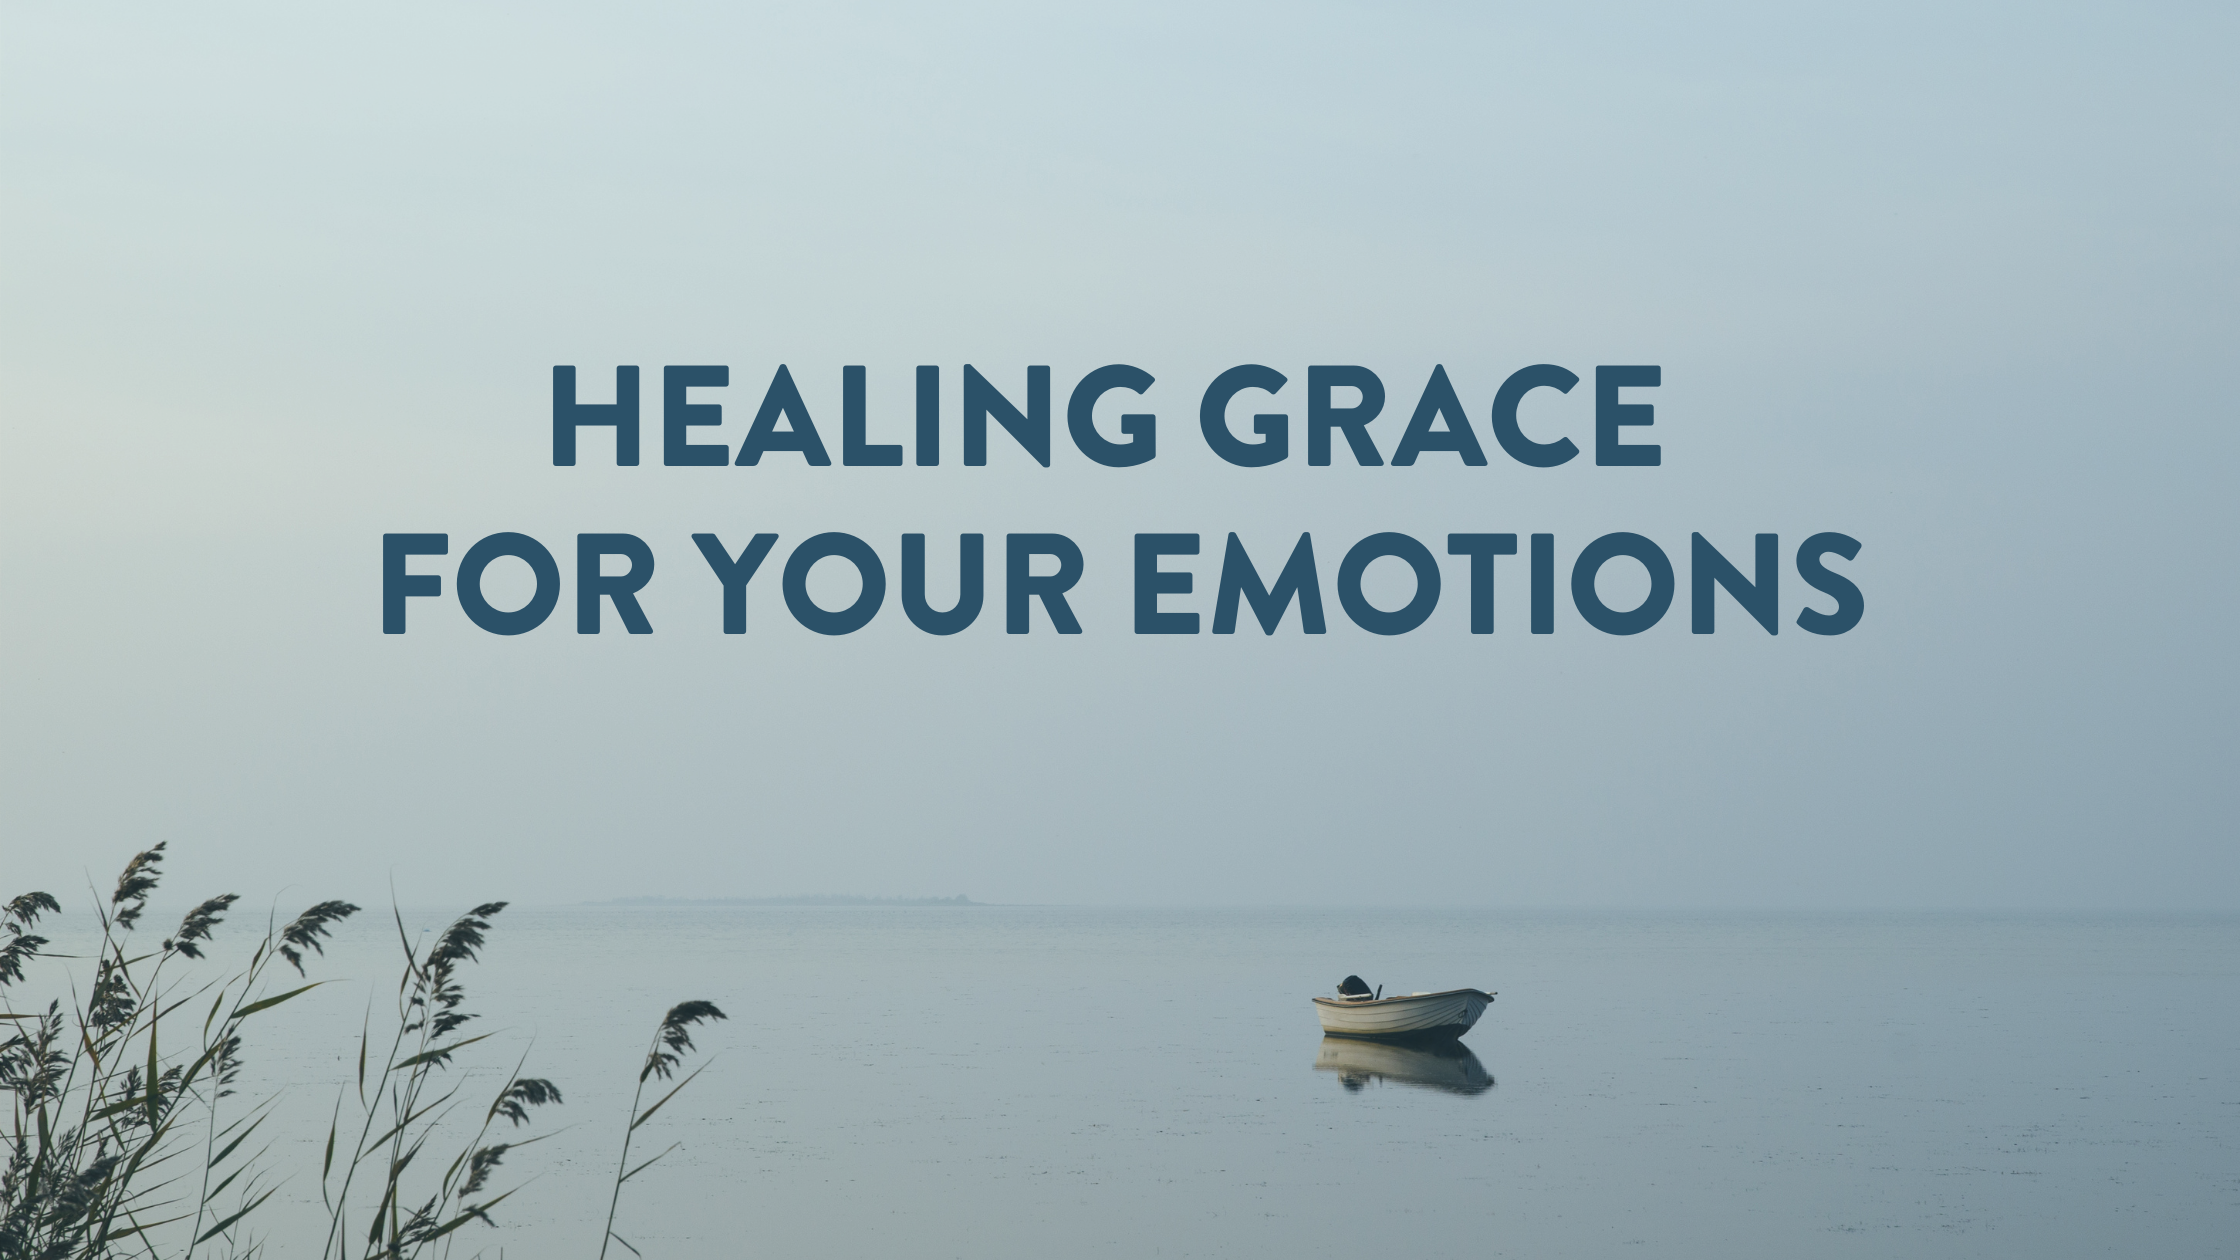 Healing Grace for Your Emotions